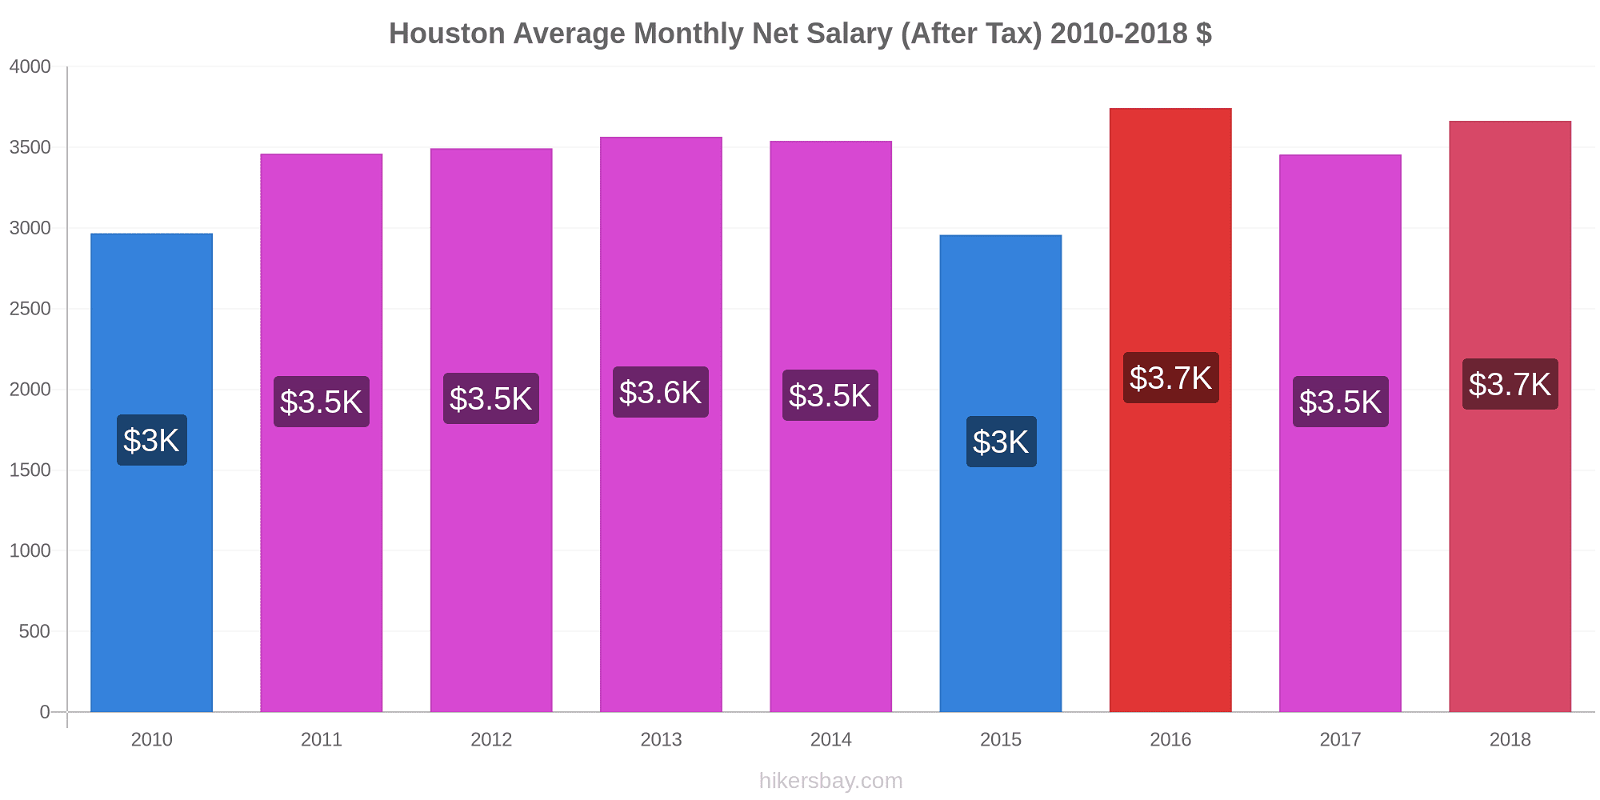 Houston price changes Average Monthly Net Salary (After Tax) hikersbay.com